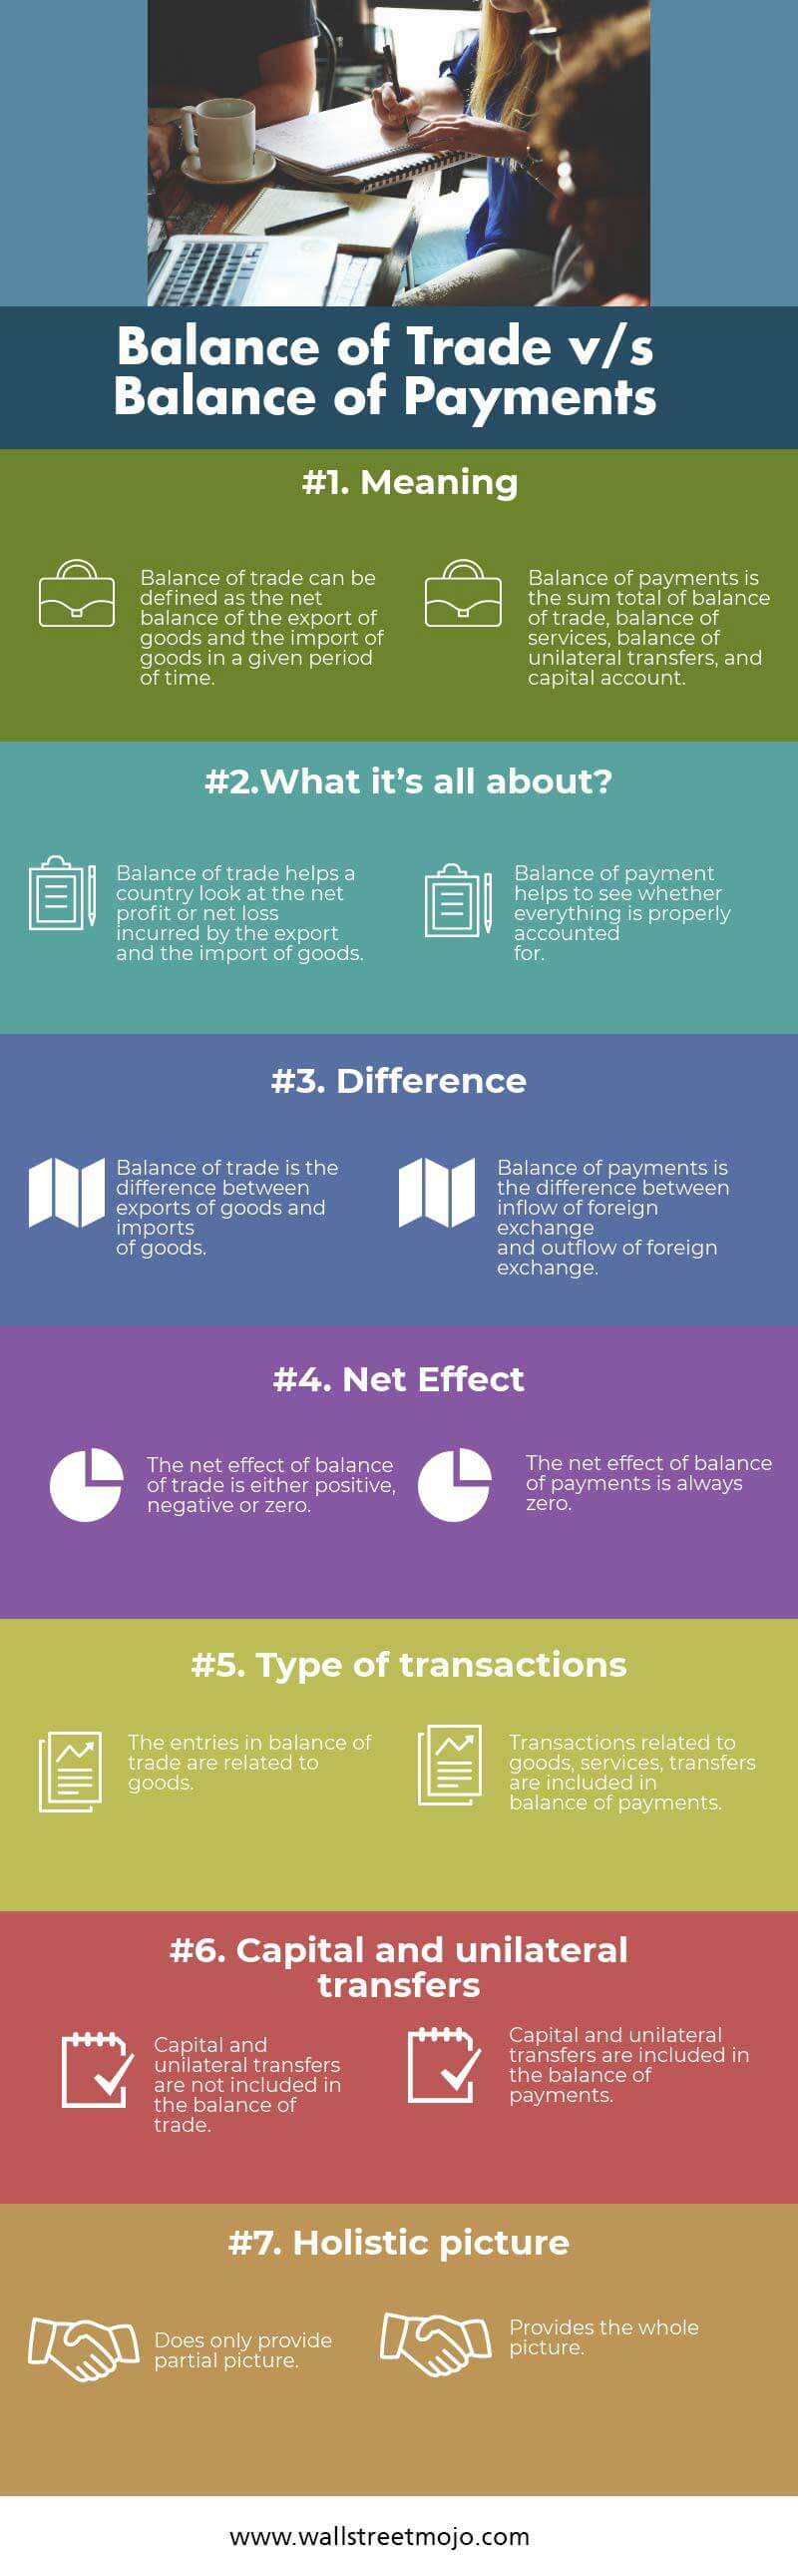 balance of trade vs balance of payments | top 7 differences